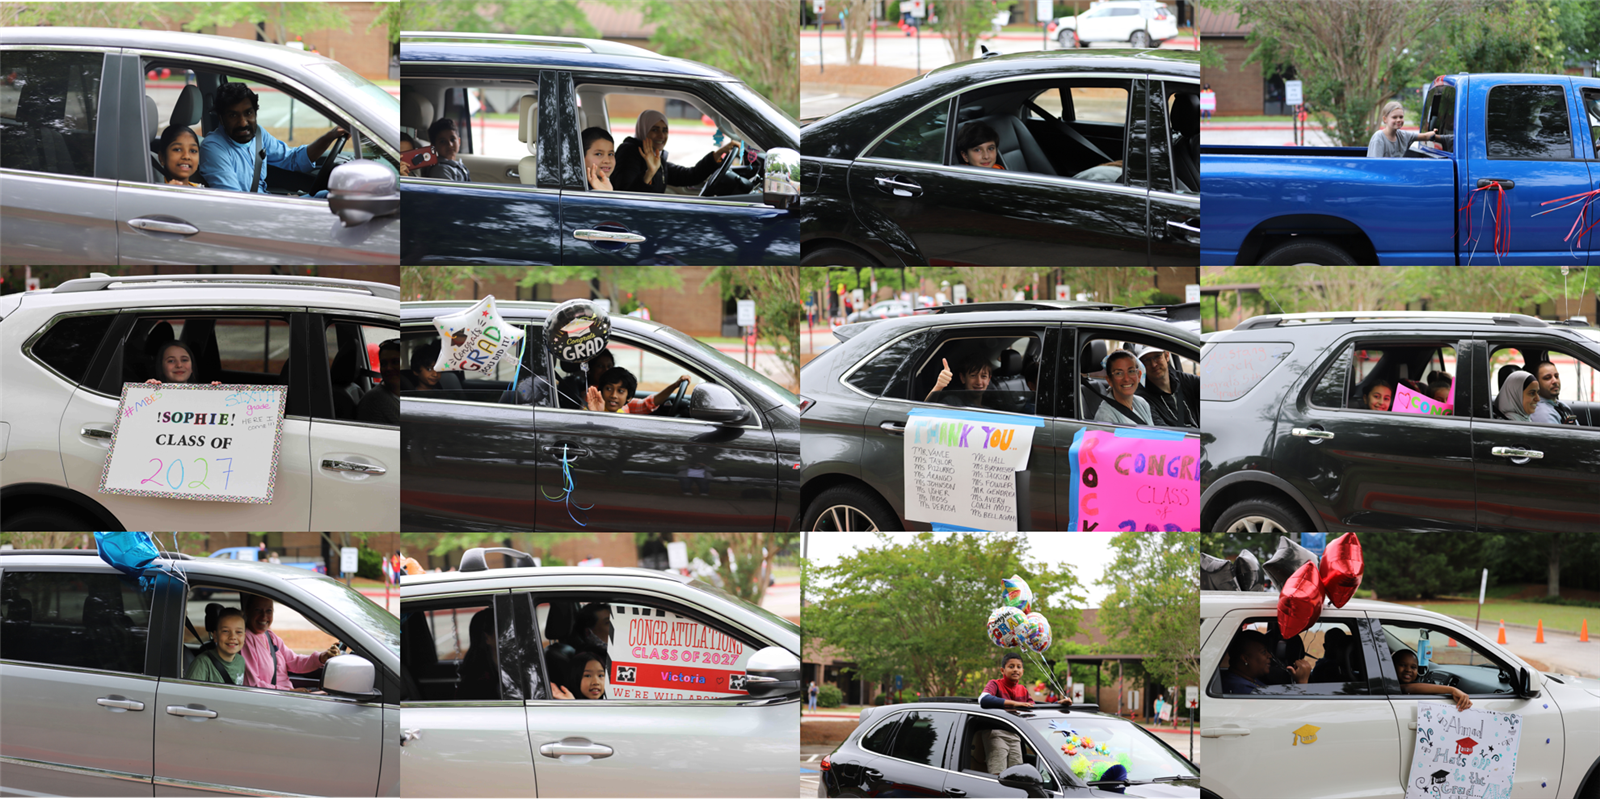 car parade collage 2